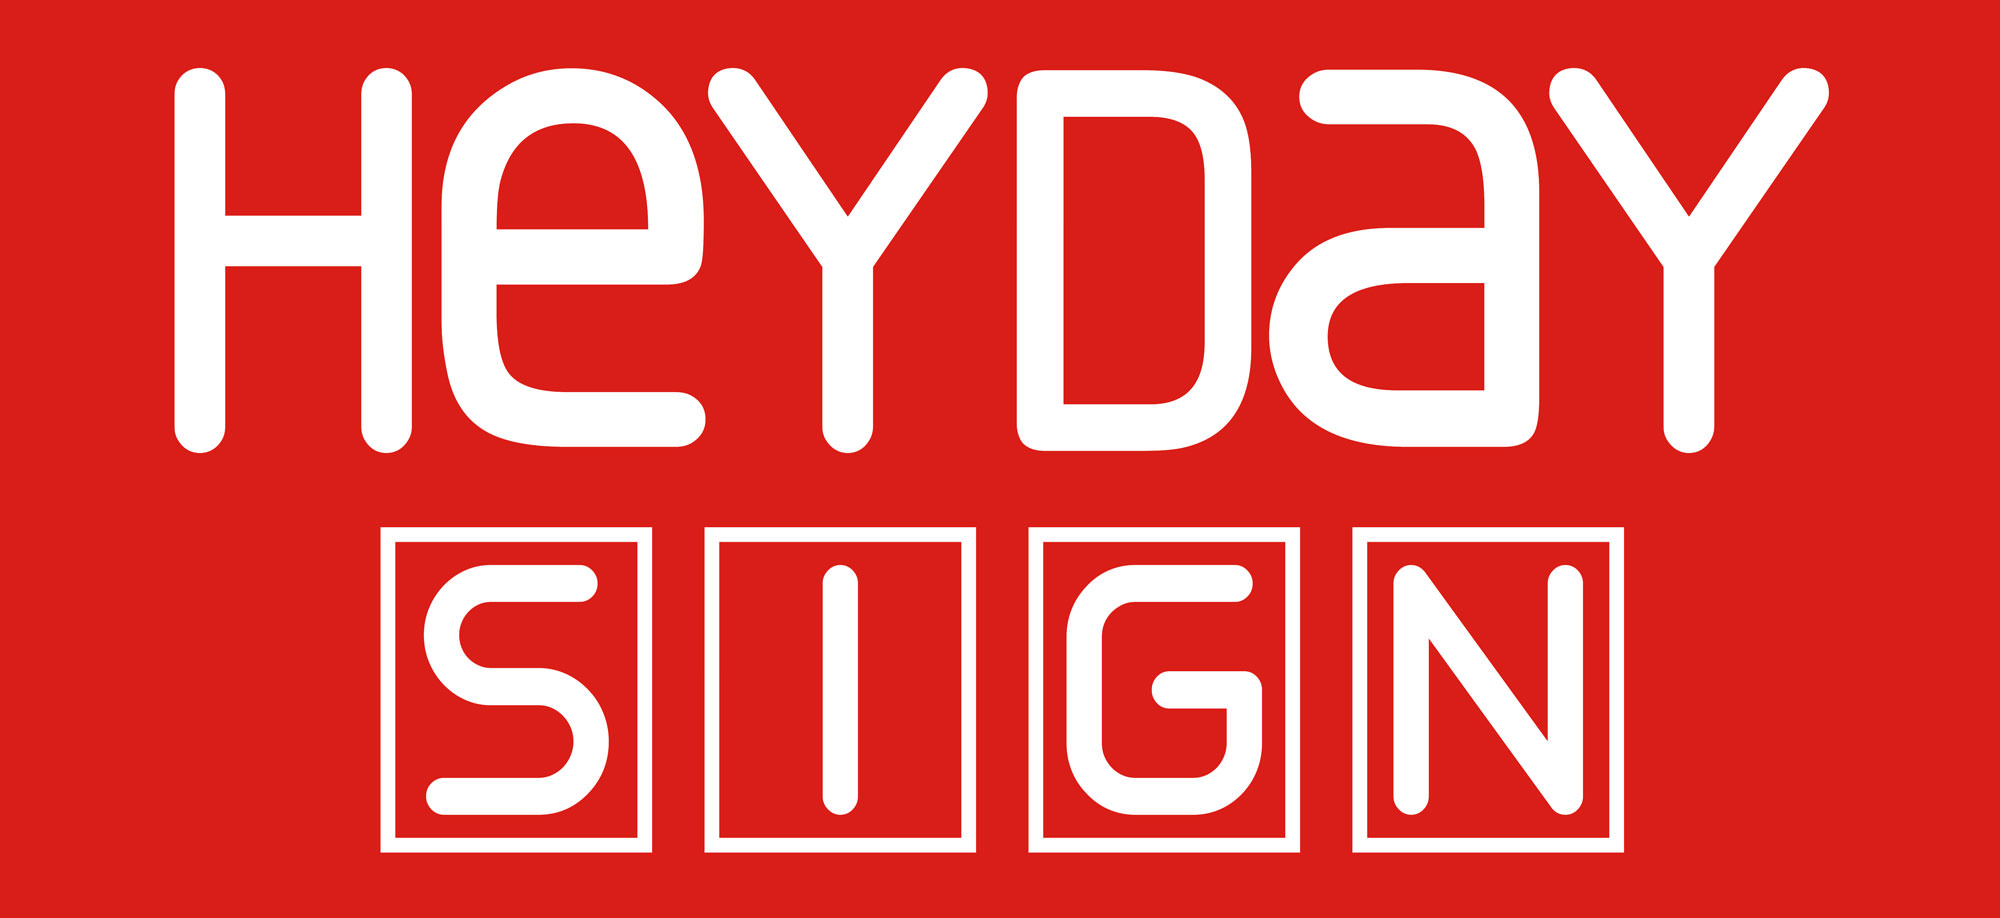 HEYDAY SIGN